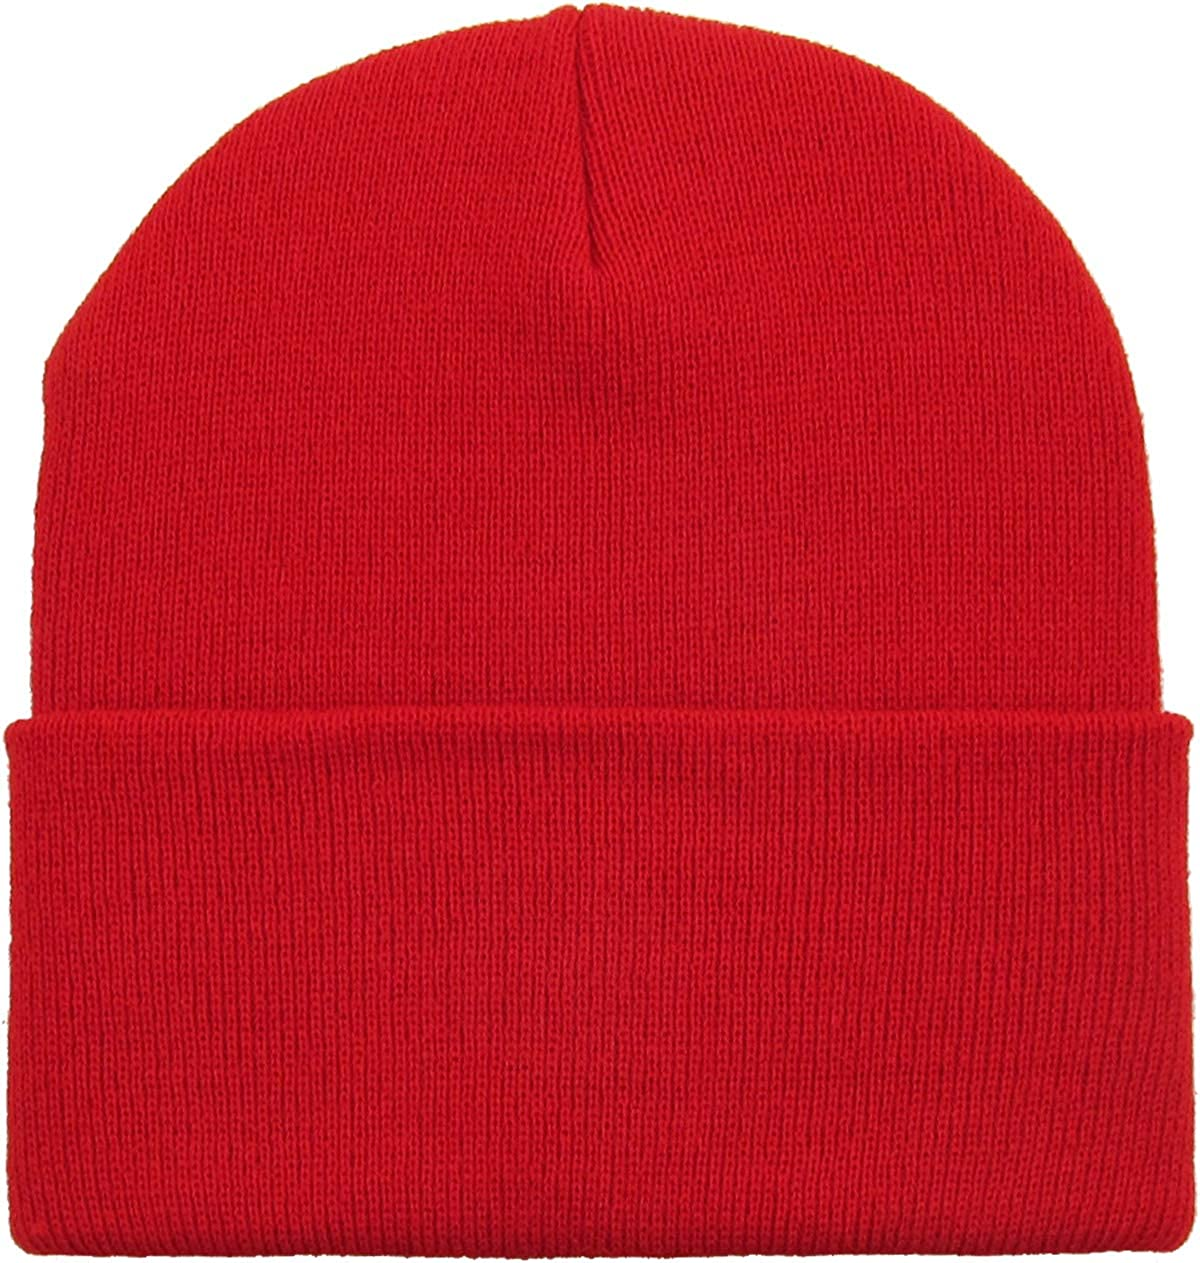 27caf004 Mens Daily Cuffed Beanie Thick Warm Comfy Made in USA for USA Knit HAT Cap  Womens Kids (One Size, 1.- Red) at Amazon Men's Clothing store: